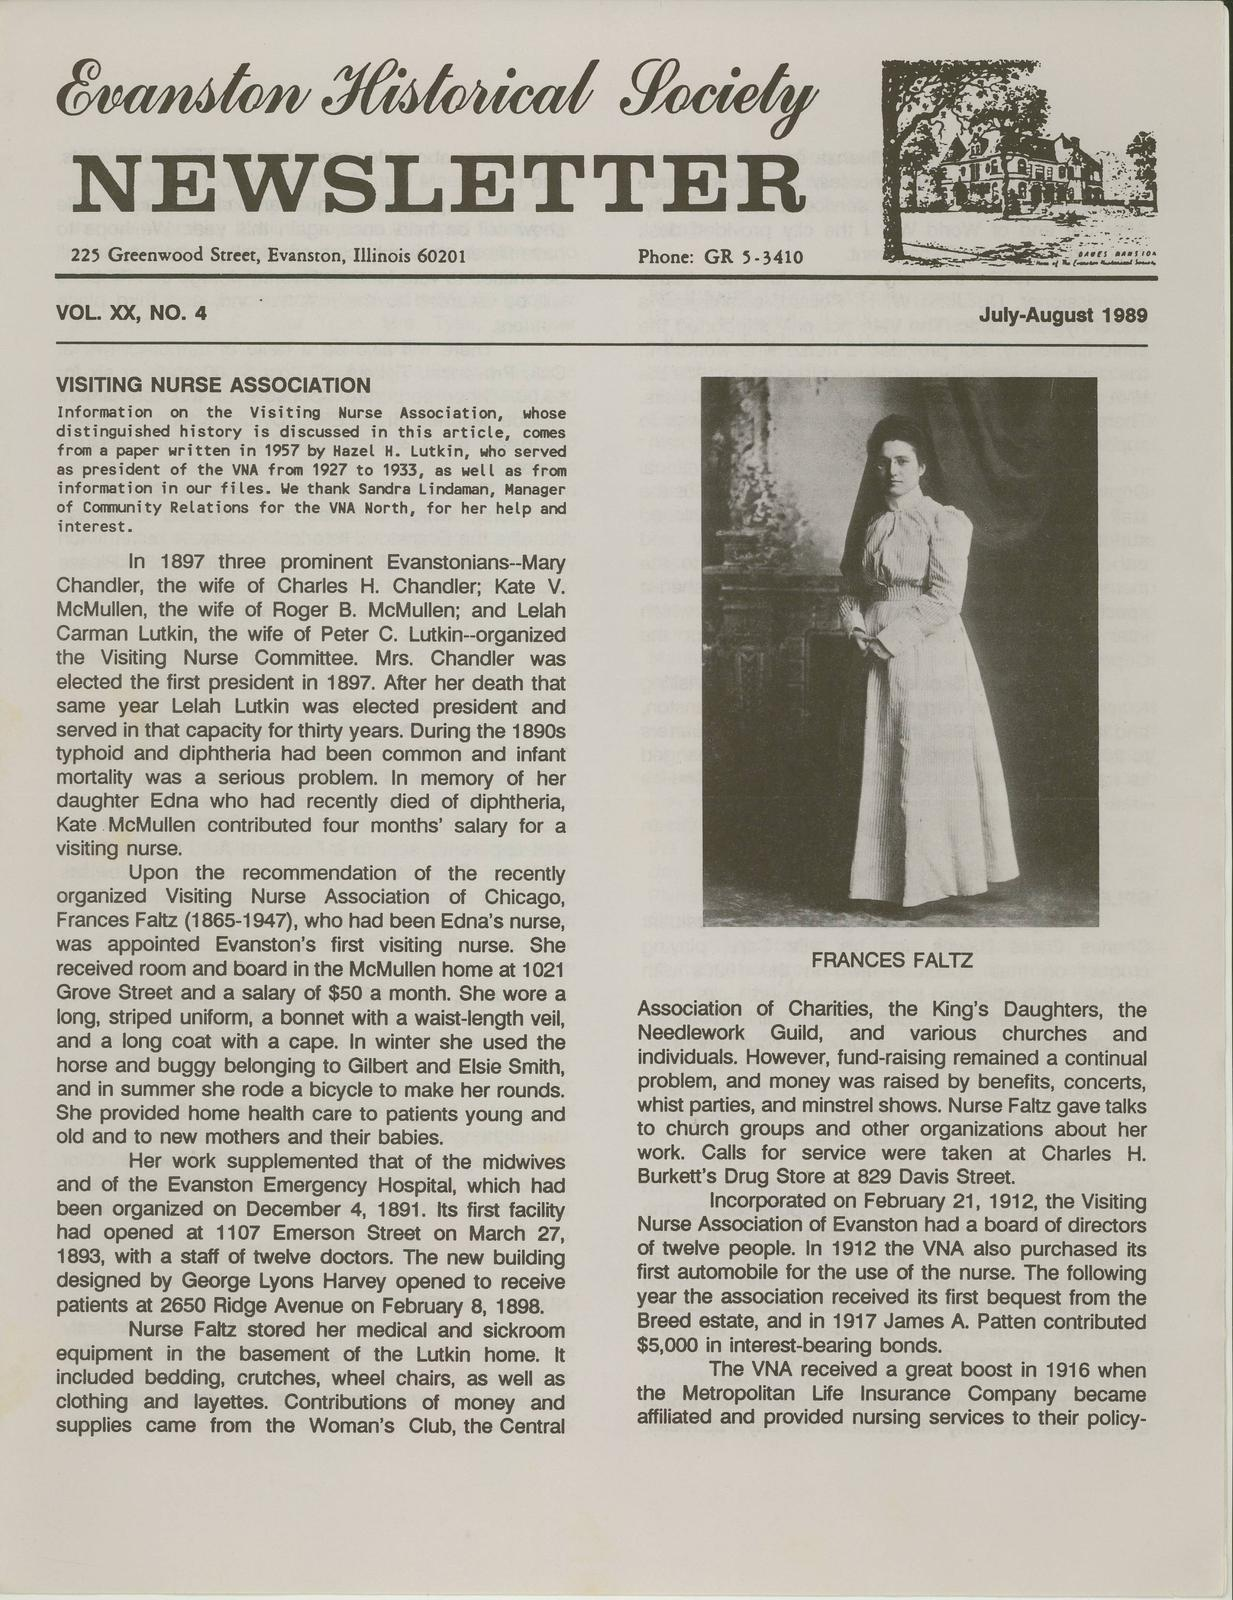 Visiting Nurse Association North: Evanston Historical Society News